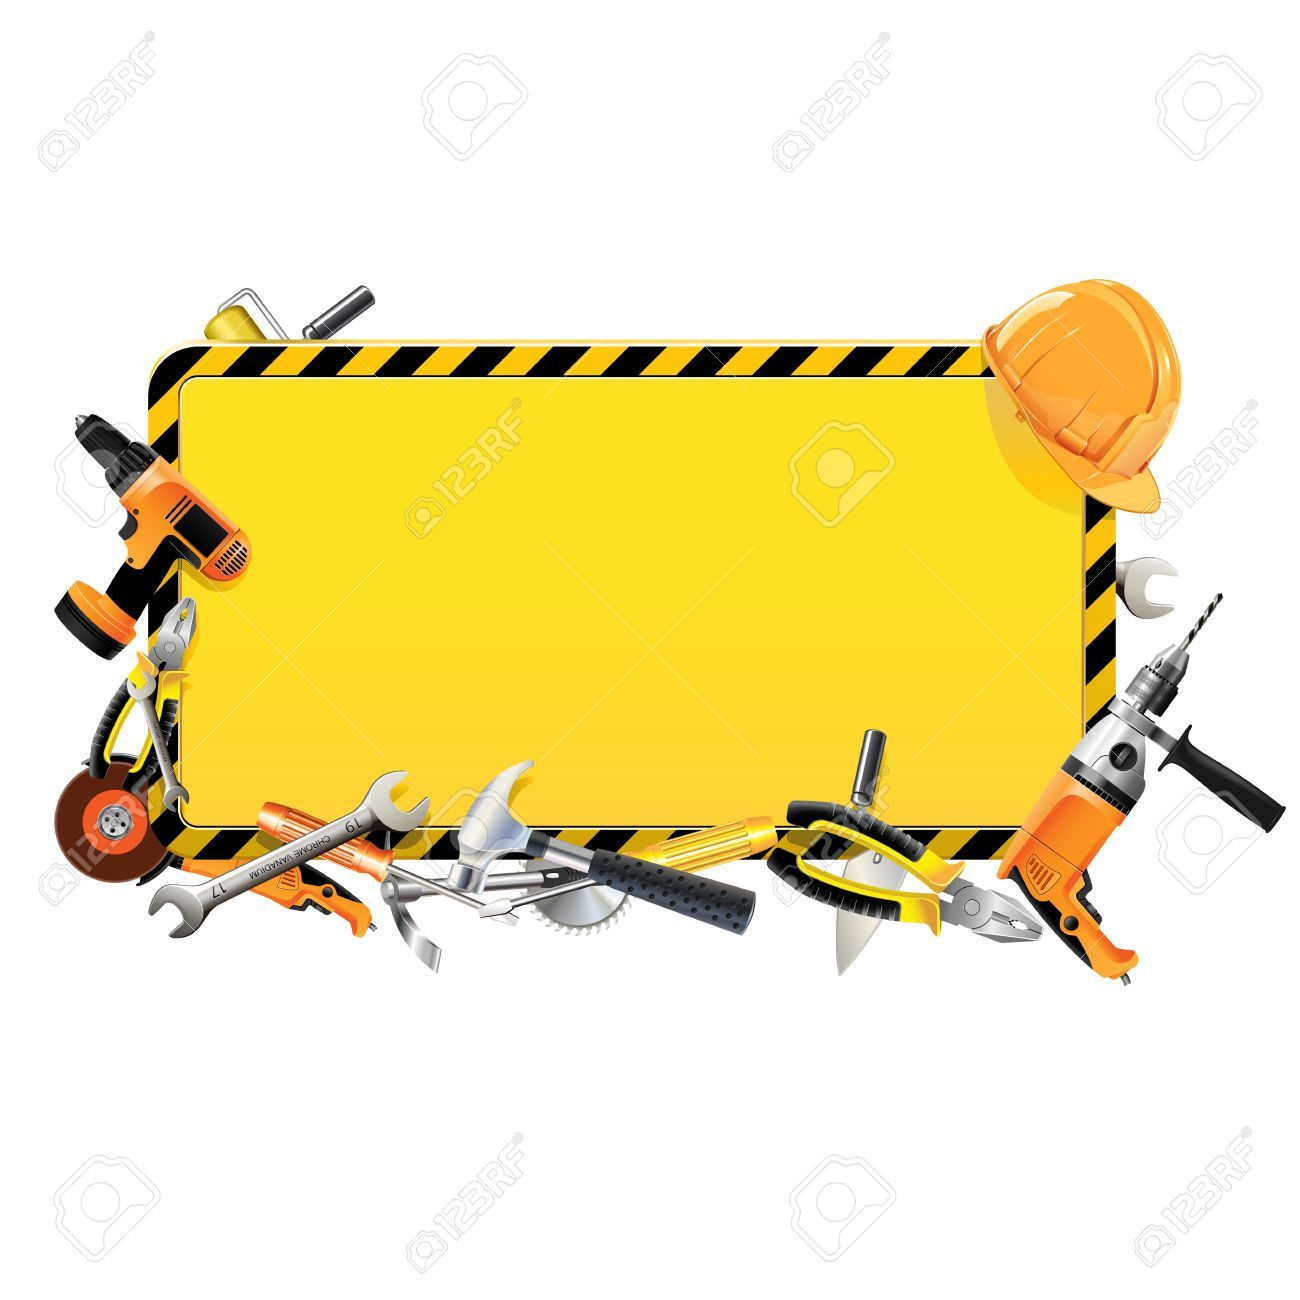 Image result for tool. Carpentry clipart border